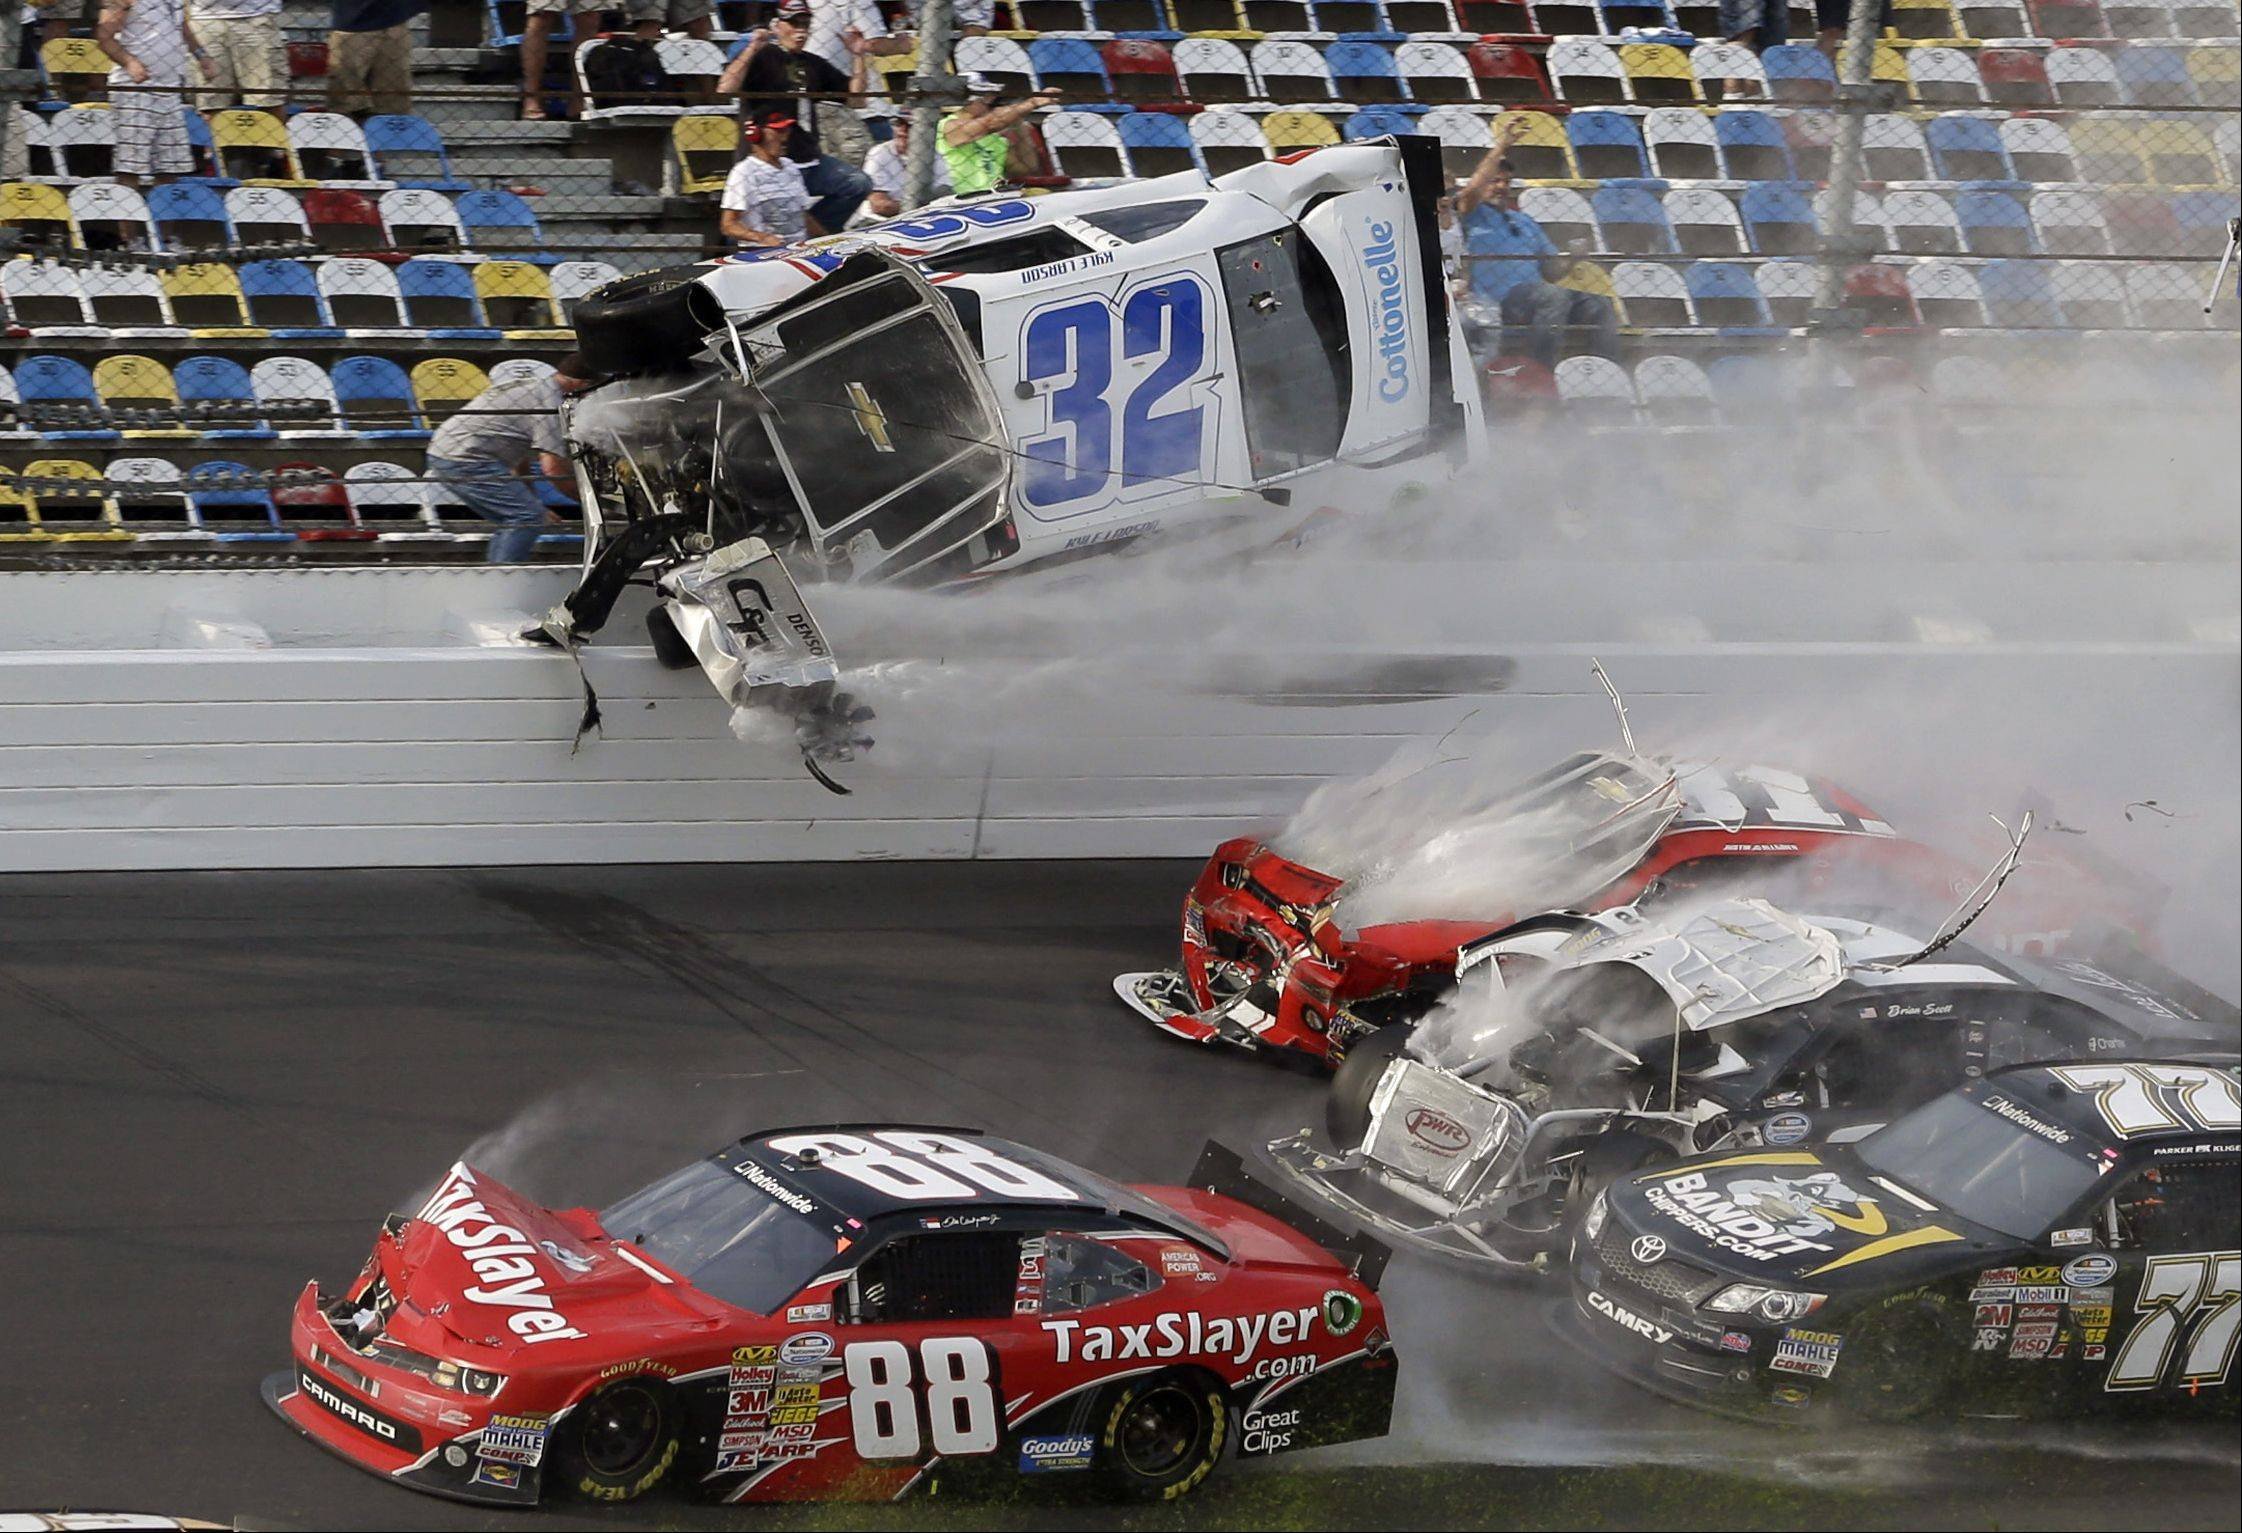 Kyle Larson (32) goes airborne and into the catch fence in a multicar crash involving Dale Earnhardt Jr. (88), Parker Kilgerman (77), Justin Allgaier (31) and Brian Scott (2) during the final lap of the NASCAR Nationwide Series auto race at Daytona International Speedway, Saturday, Feb. 23, 2013, in Daytona Beach, Fla.